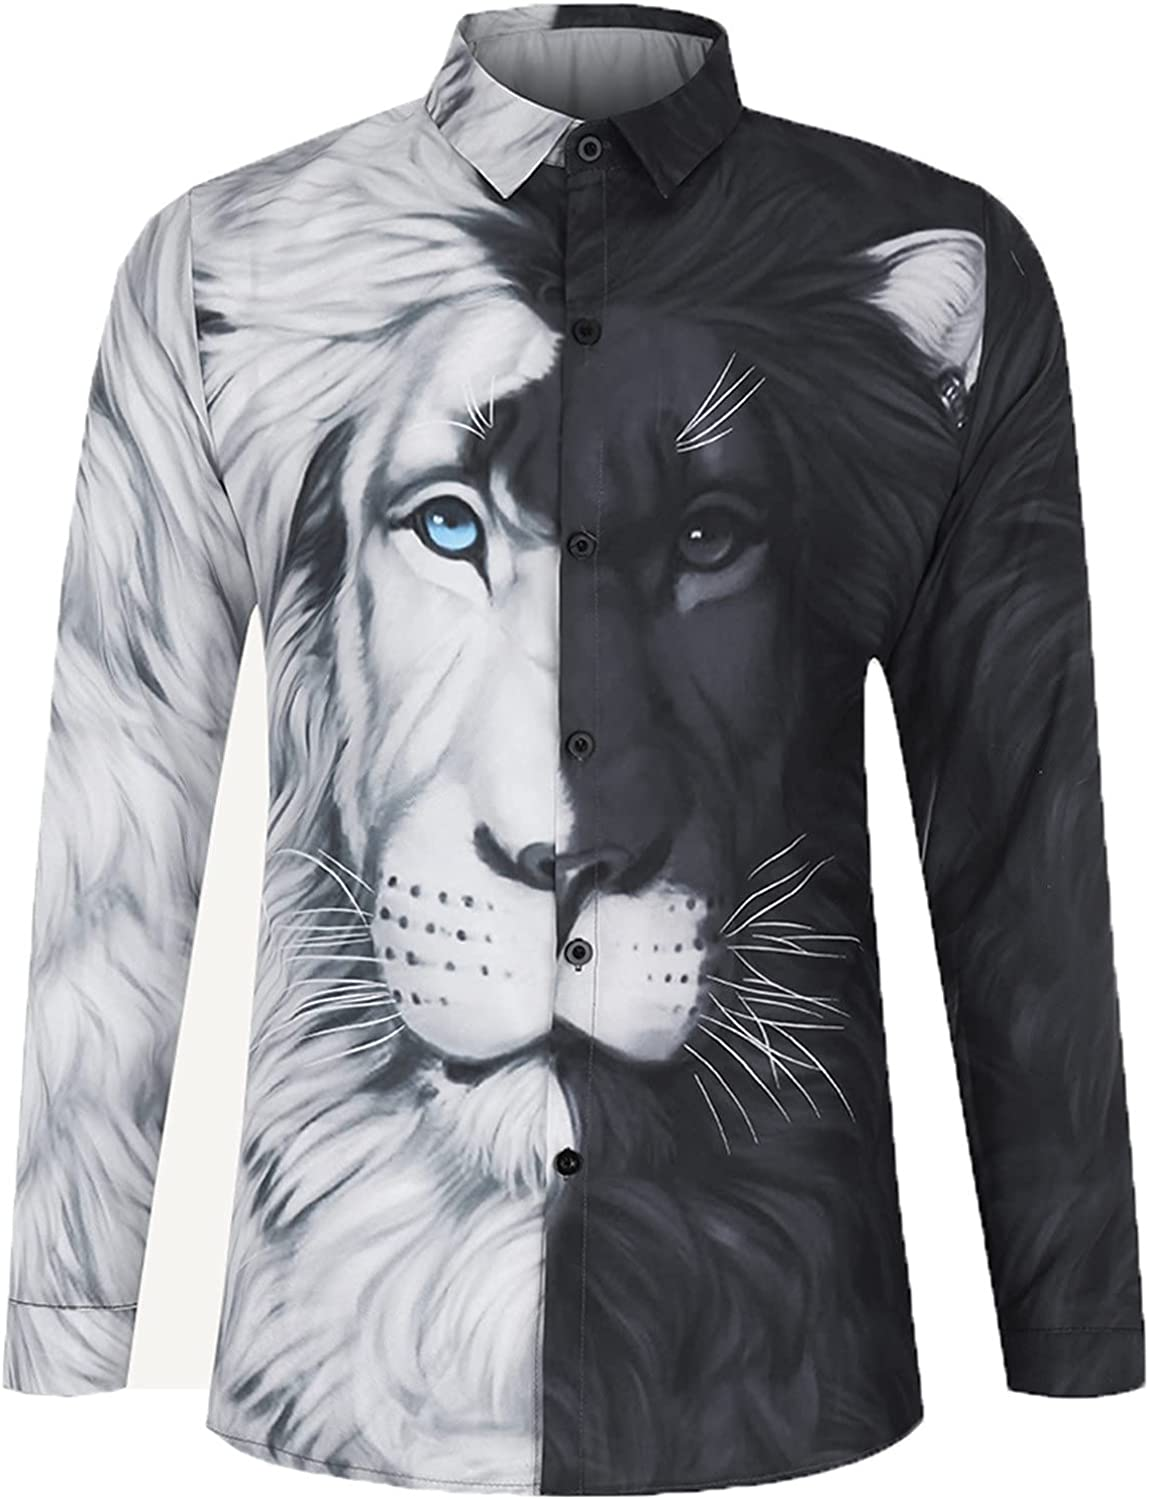 Mens Casual Shirts Fashion 3D Animal Full Printed Long Sleeve Button Down T Shirts Summer Slim Fit Tops